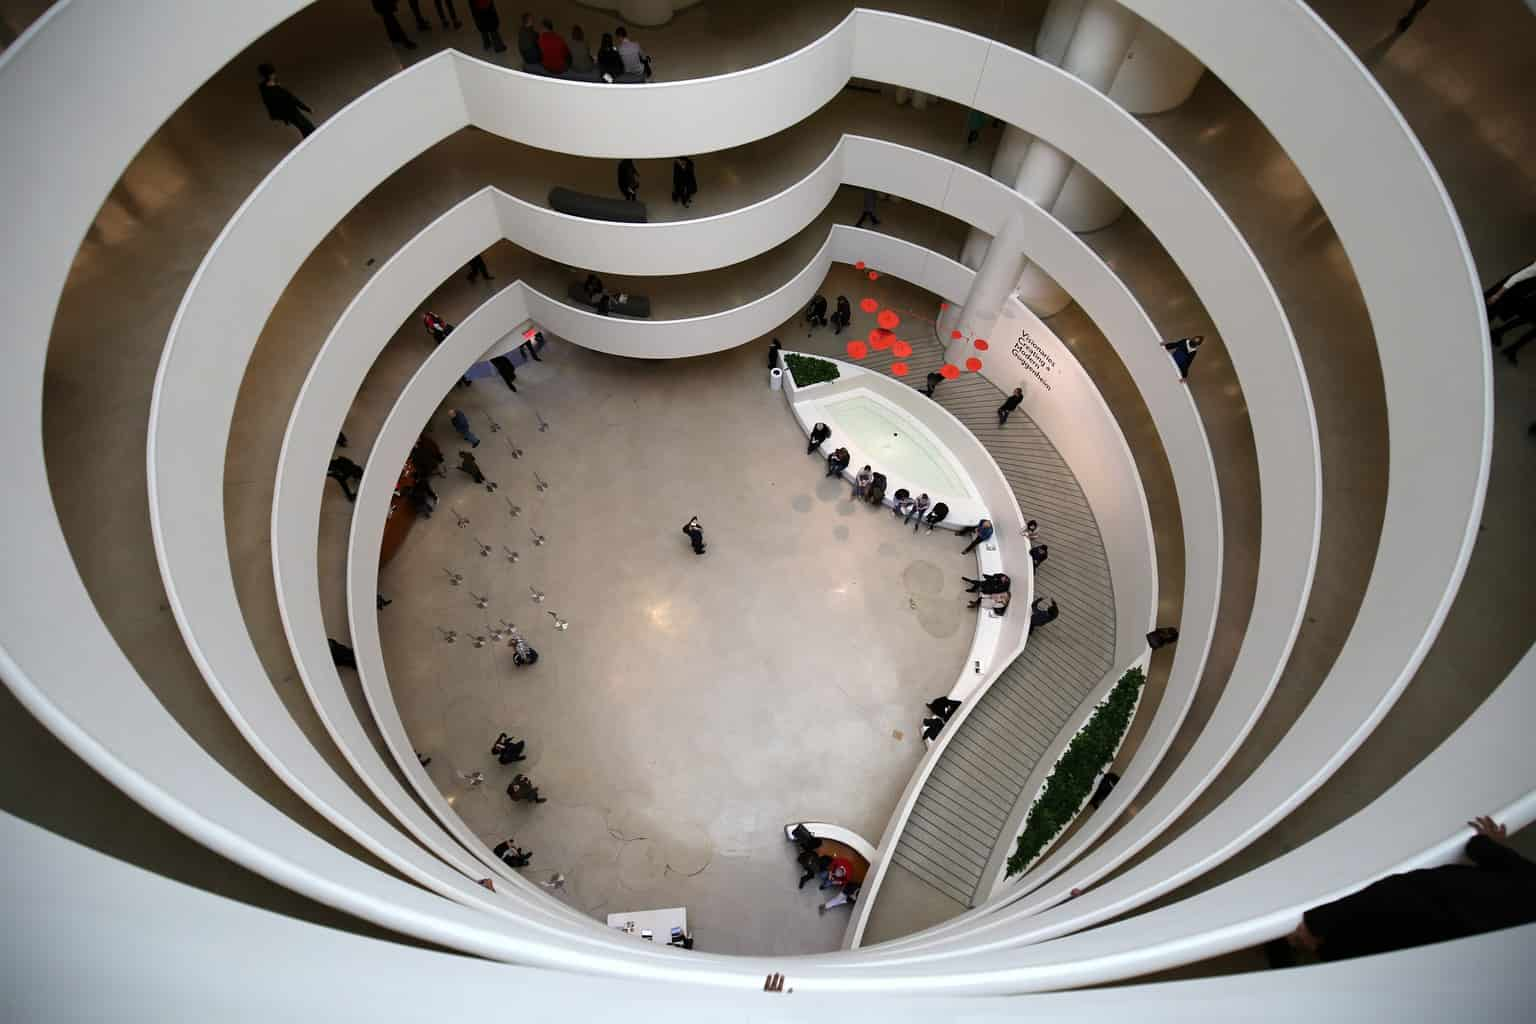 An aerial view of the main concourse in the Guggenheim.